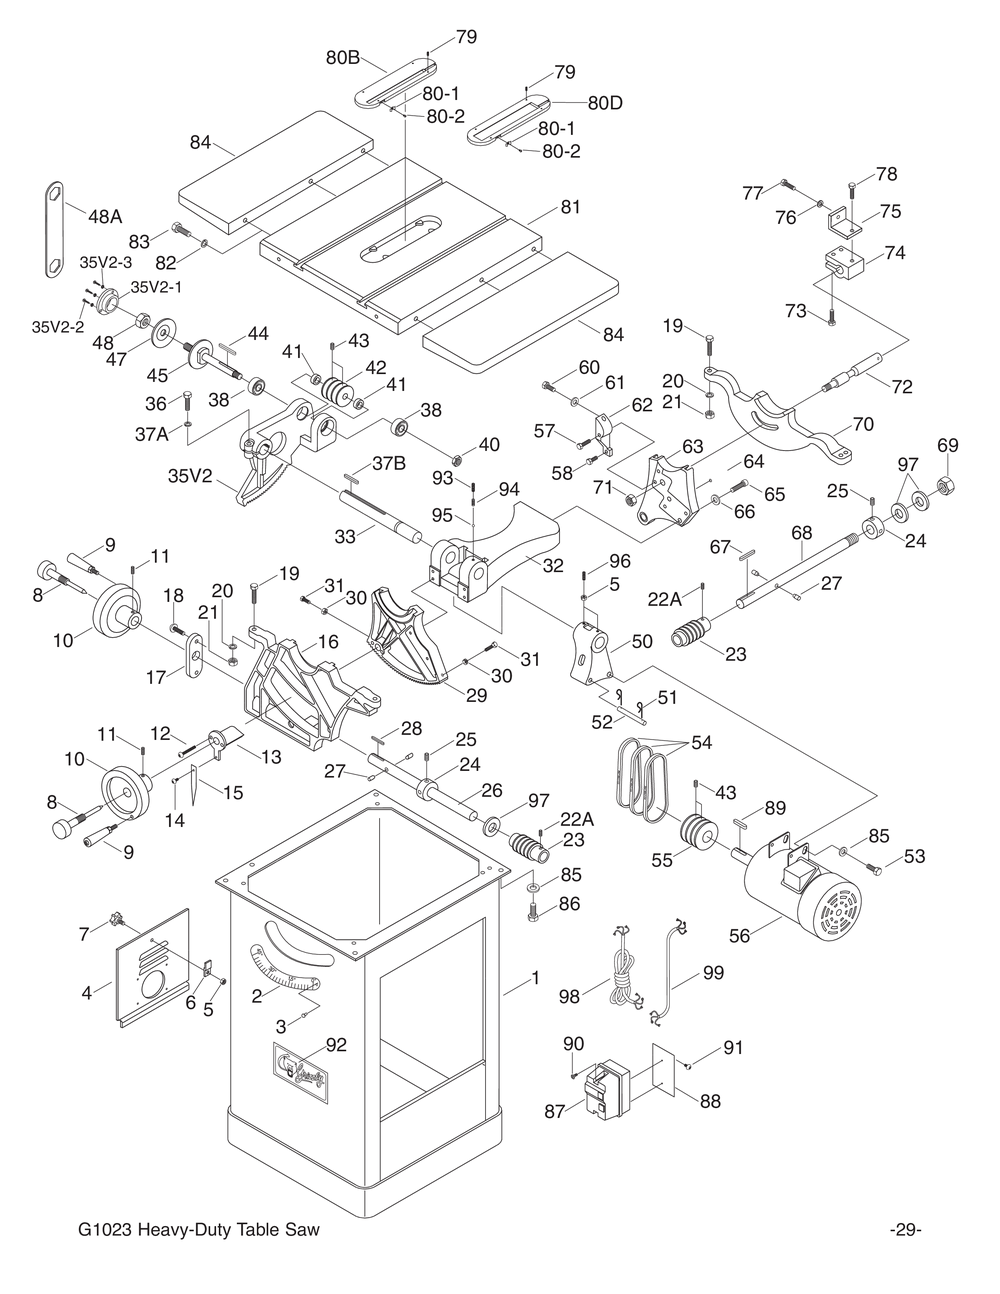 Grizzly table saw motors wiring diagram schematic wiring diagram shop tools and machinery at grizzly com rh grizzly com delta table saw motor delta table saw parts greentooth Choice Image